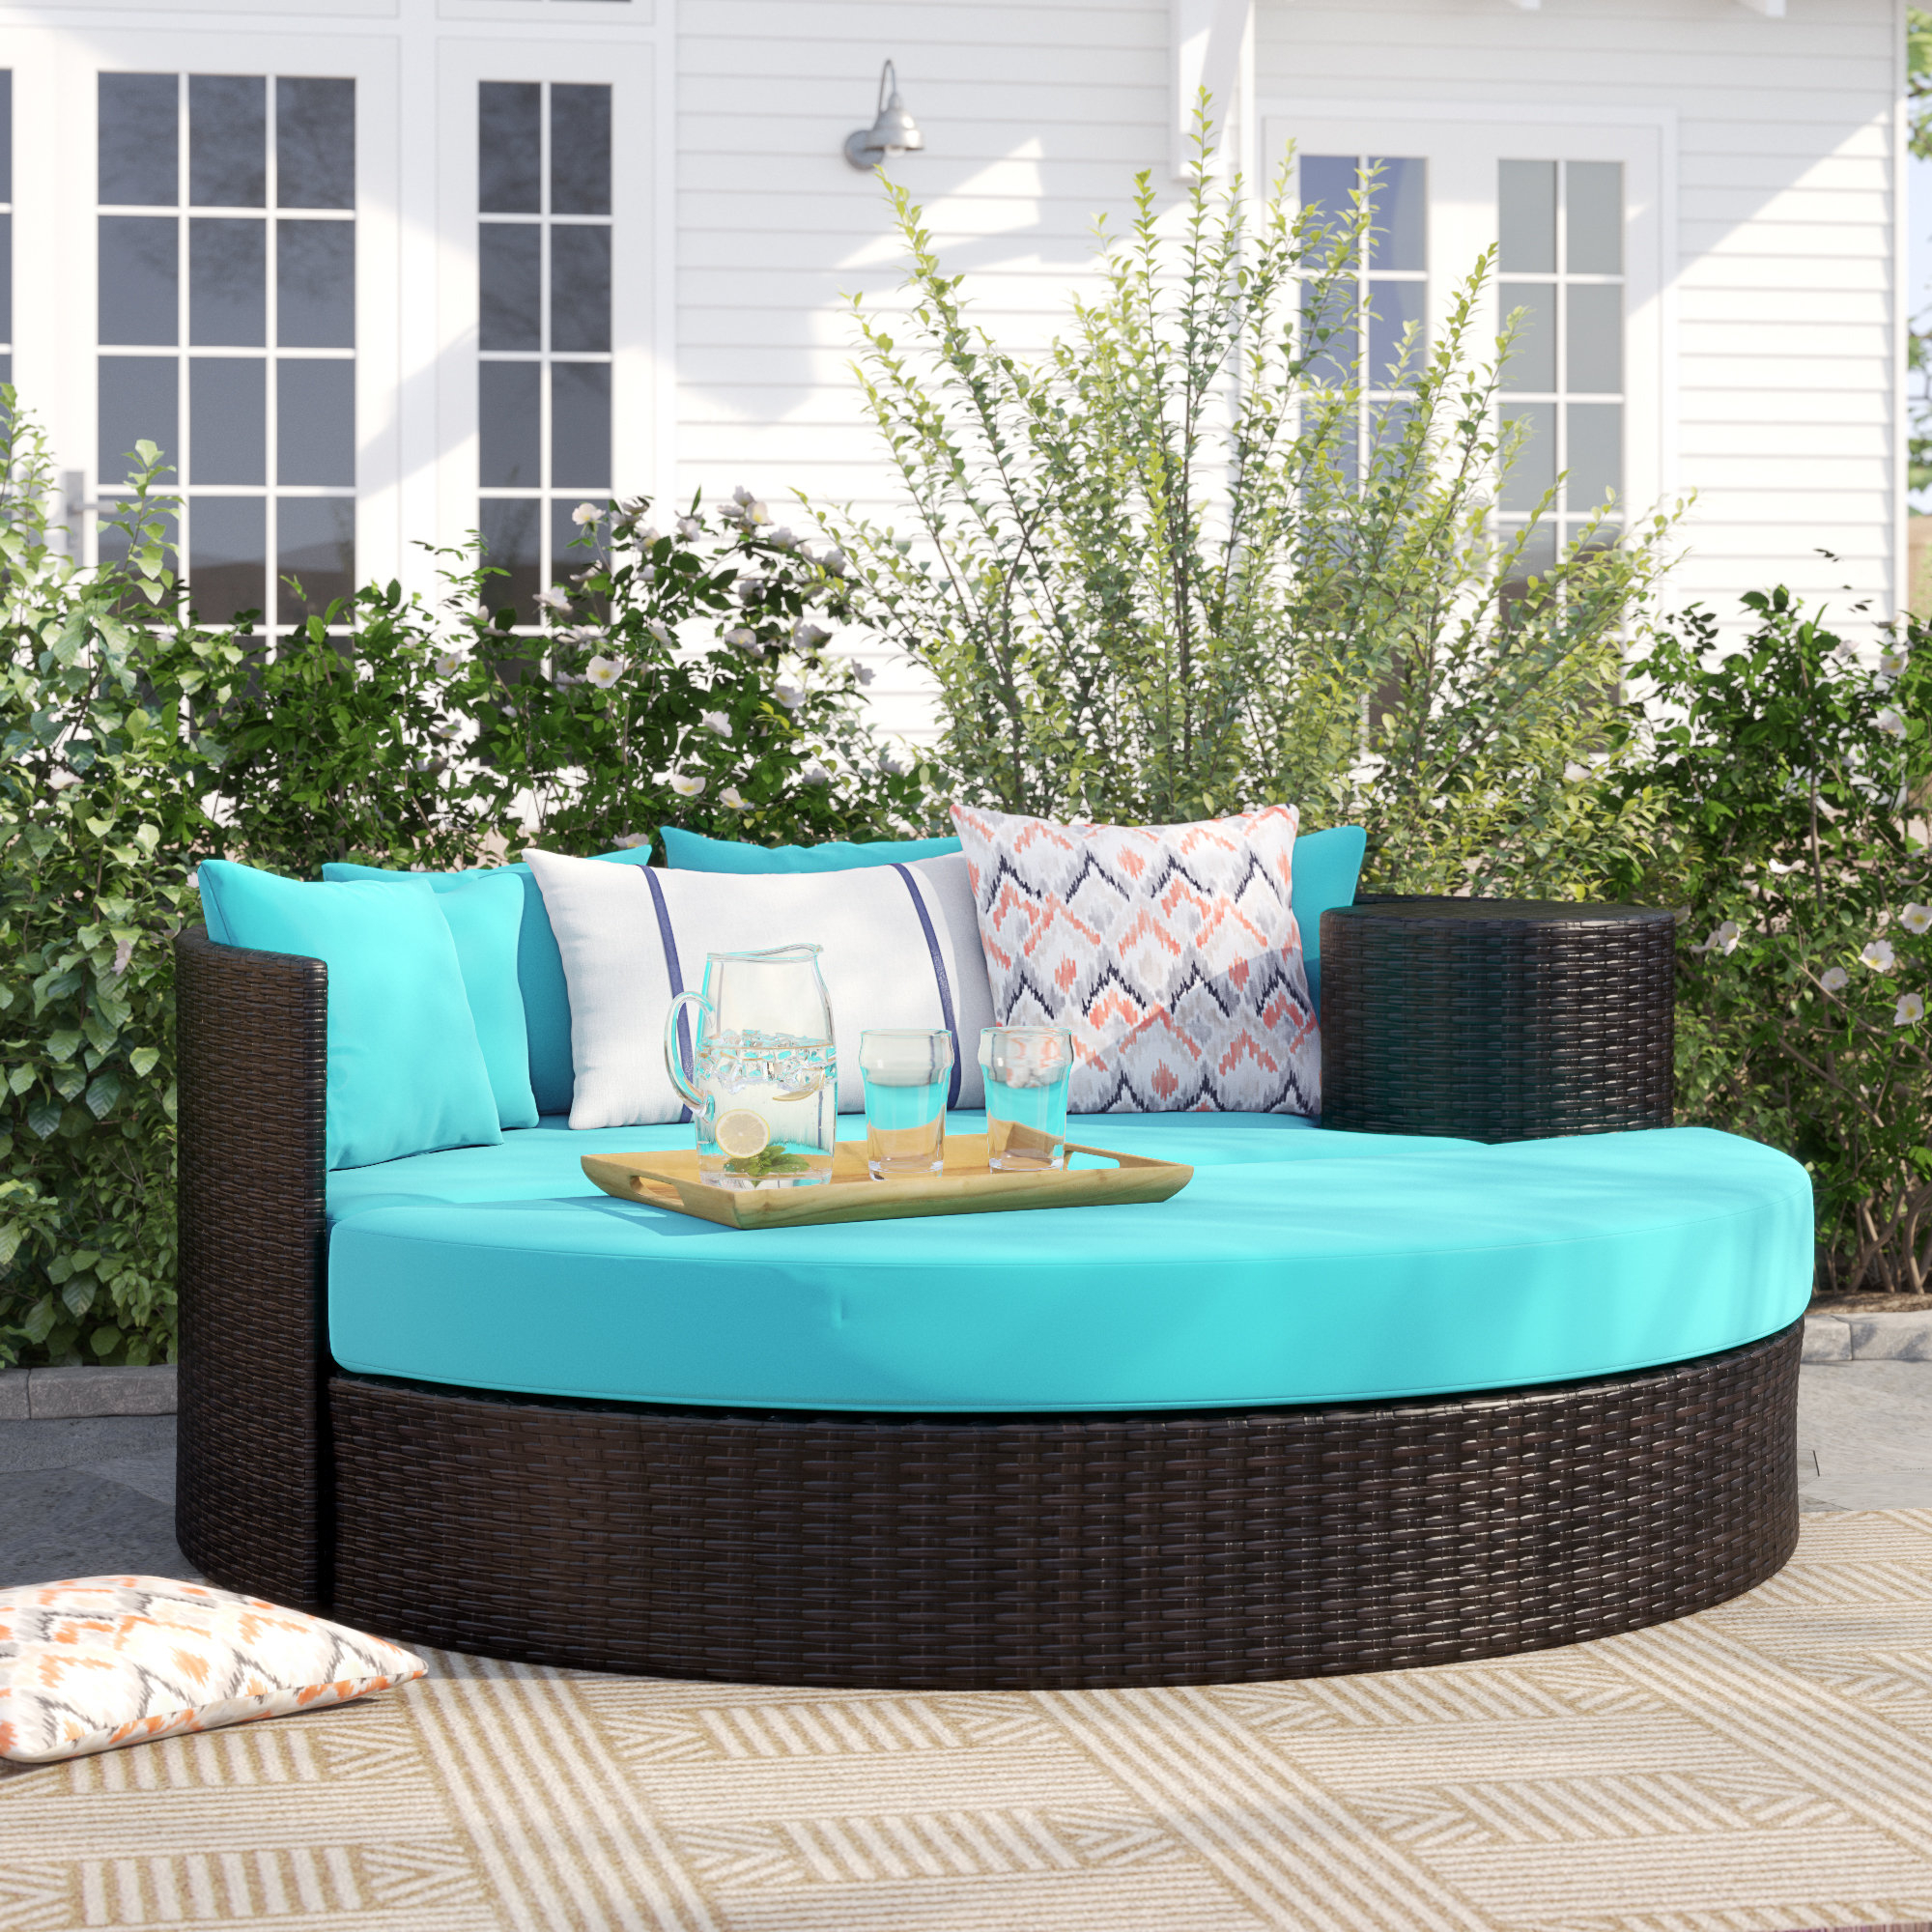 Lammers Outdoor Wicker Daybeds With Cushions Regarding Most Up To Date Freeport Patio Daybed With Cushion (View 12 of 20)